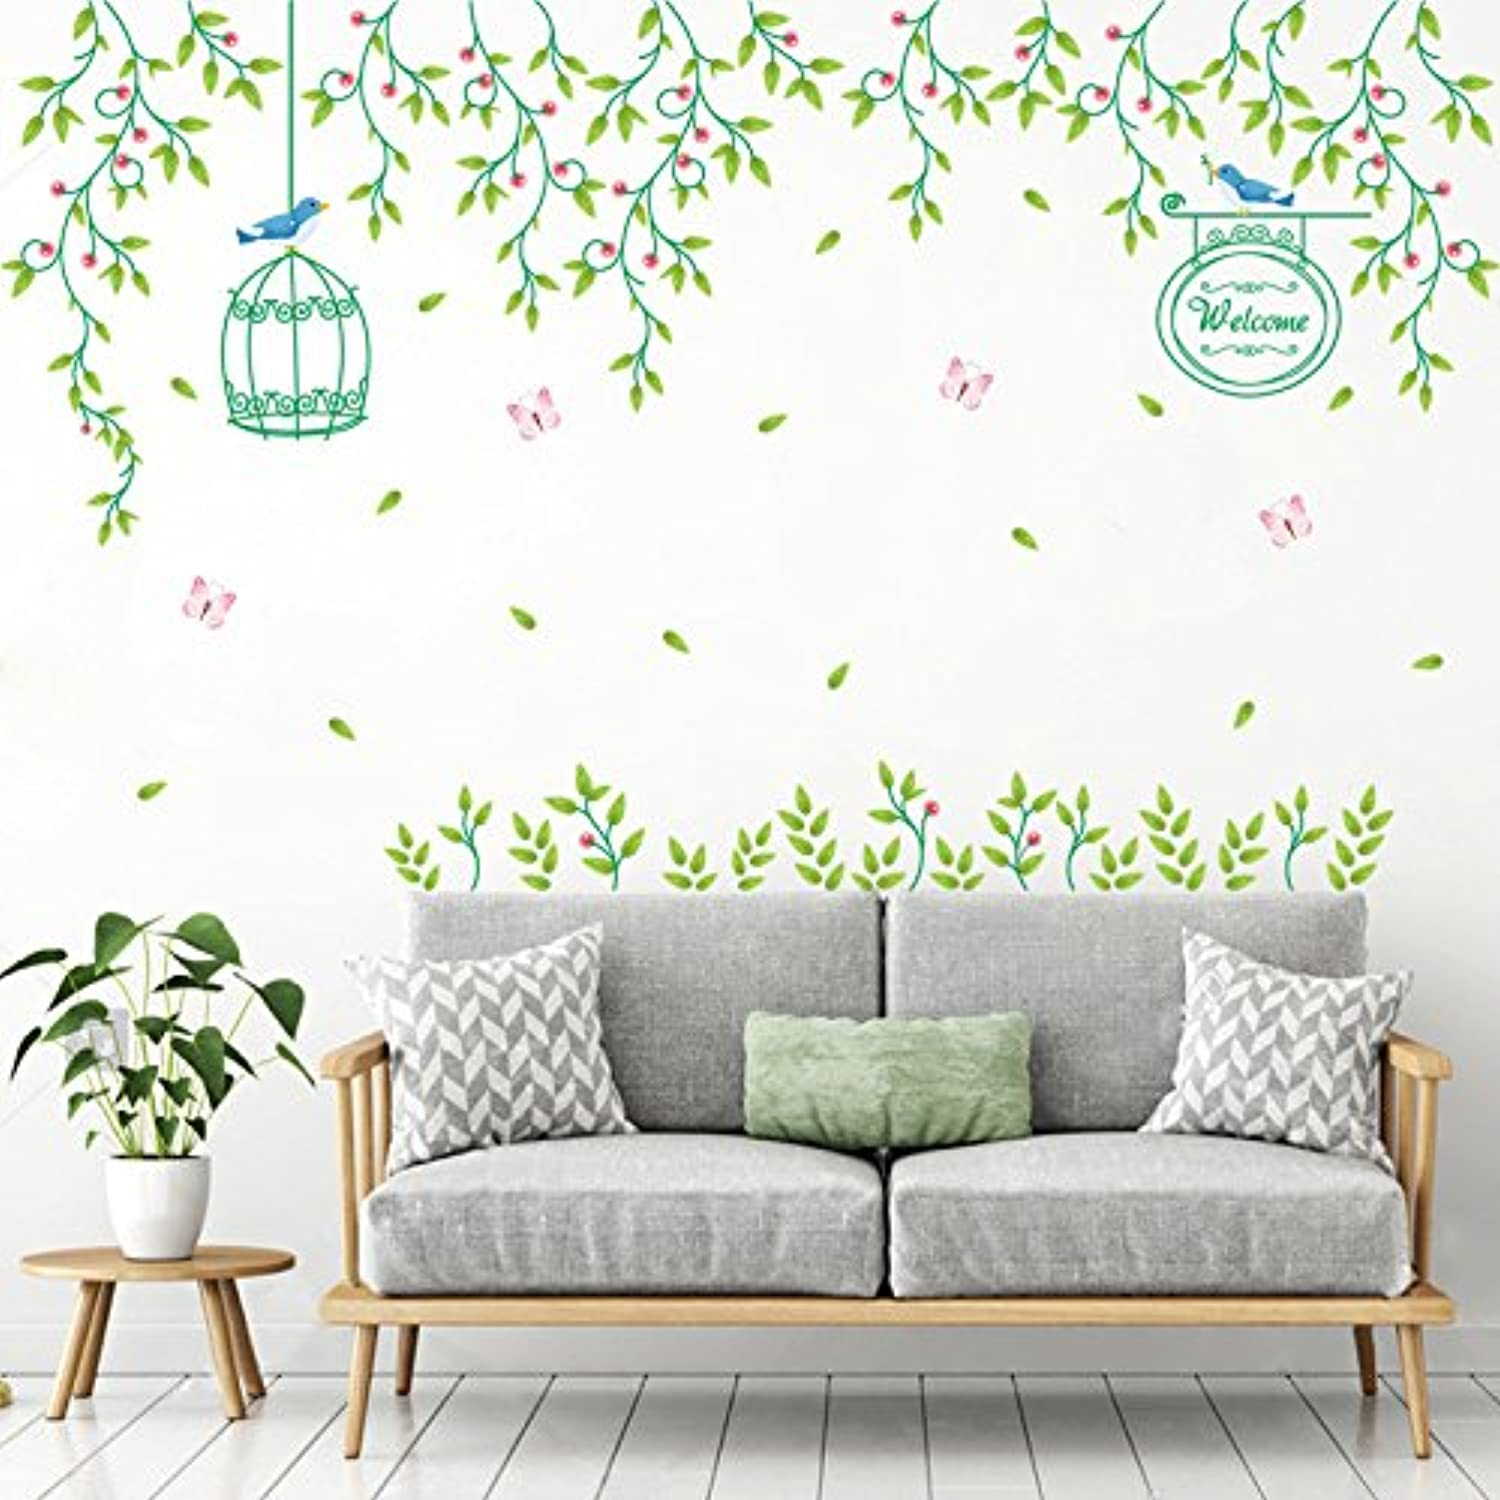 Znzbzt Flower Rattan Room Wall Decoration Wall Posters Wall Sticker Green